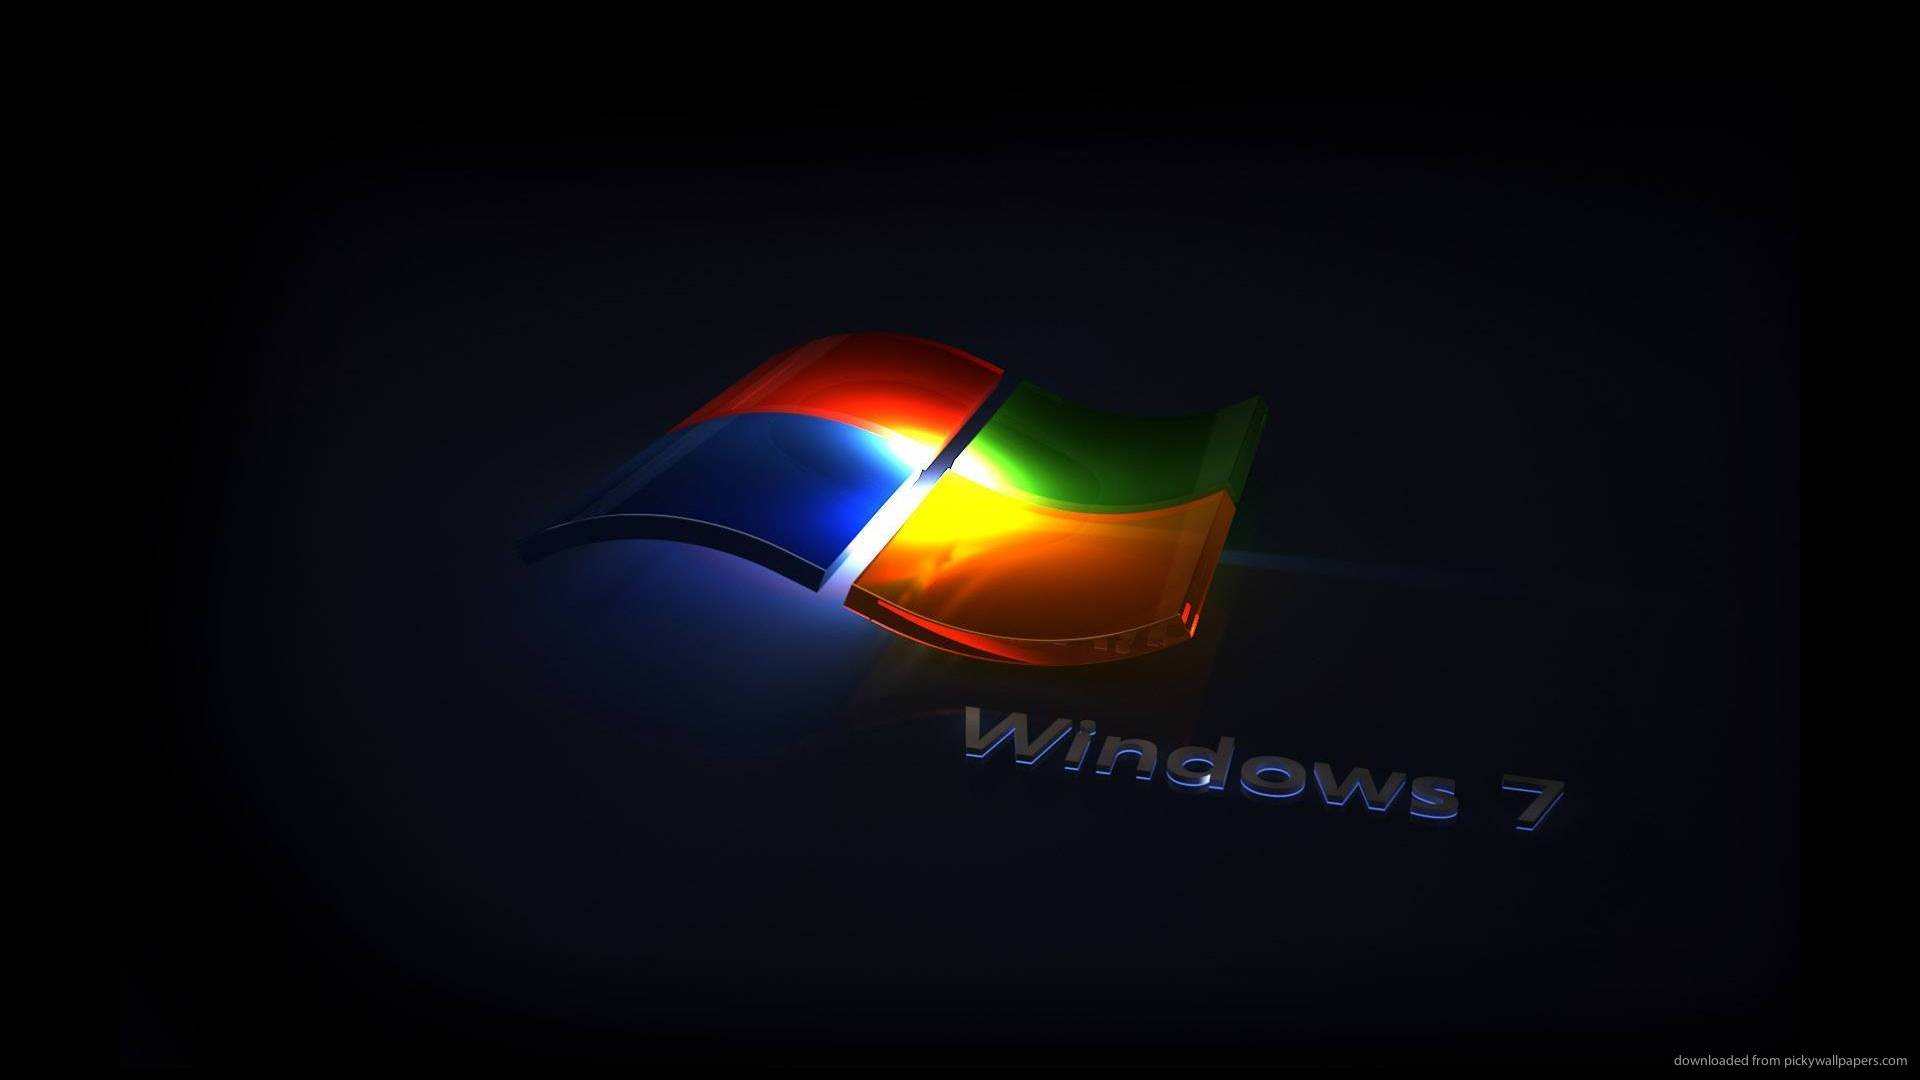 Windows 7 Wallpaper Hd 1920X1080 wallpaper   565143 1920x1080